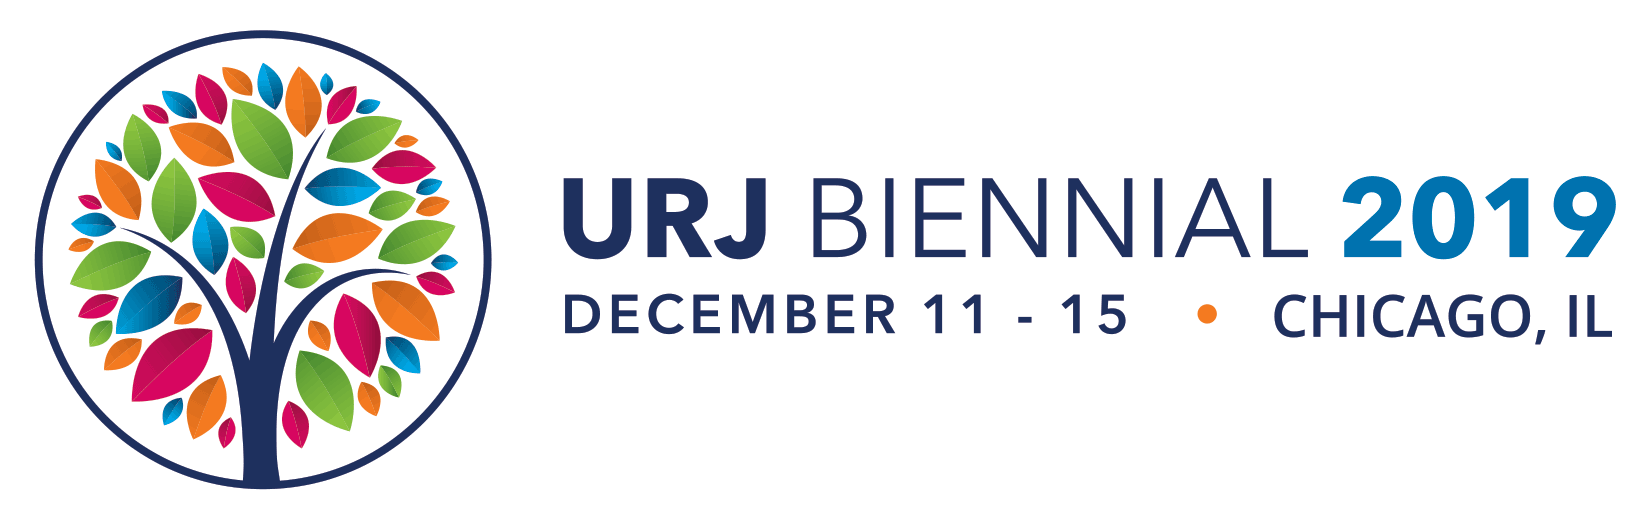 "<a href=""urjbiennial.org""